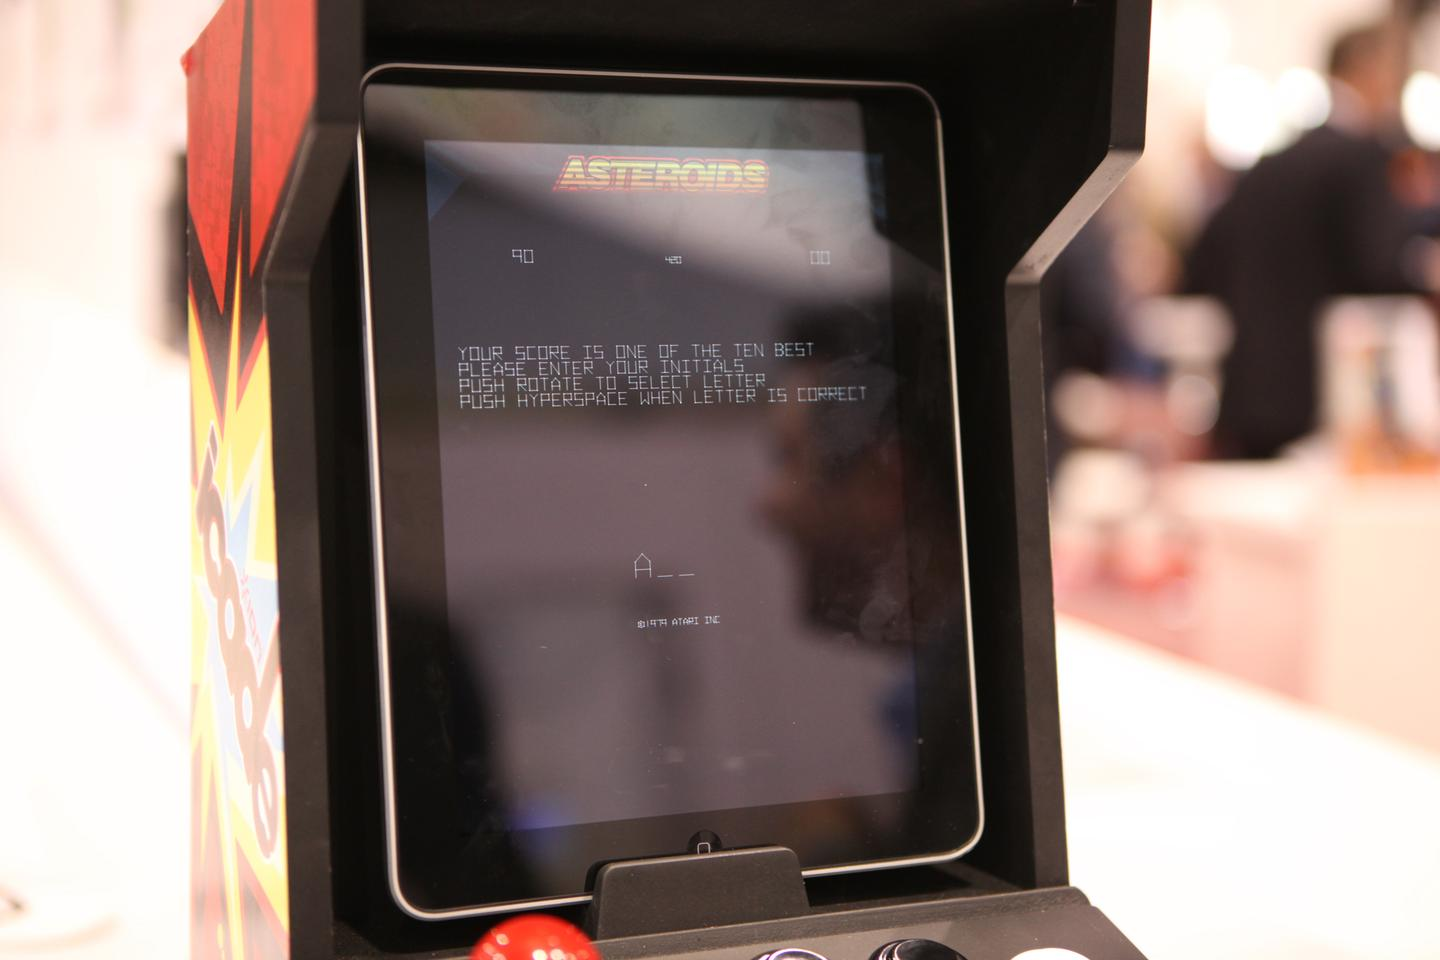 Retro Atari title such as Asteroids come with iCADE support